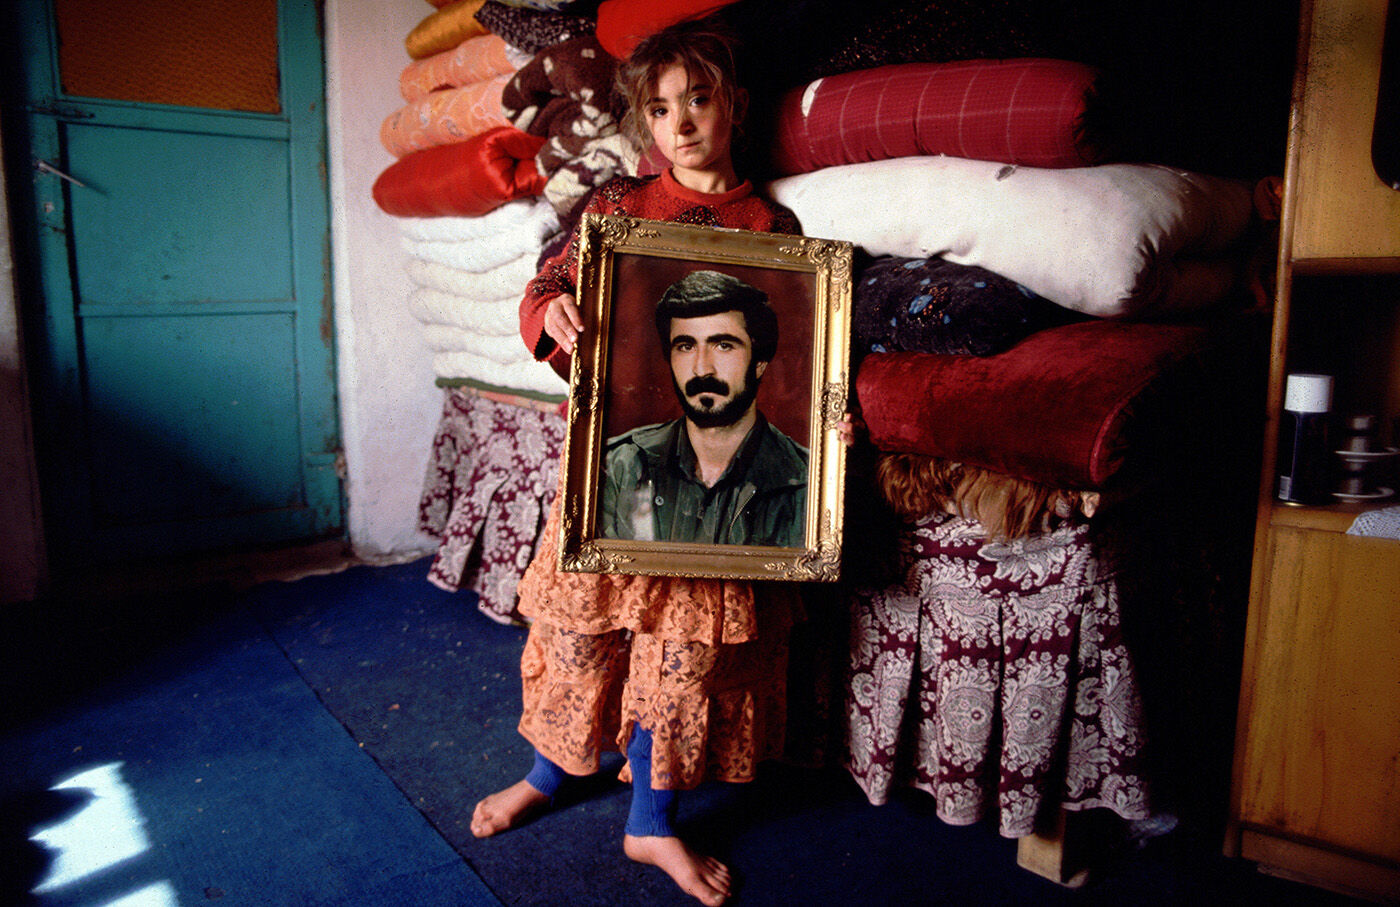 Cizre, south-east Turkey. March 1993. A Kurdish girl holds a portrait of her brother, a fighter with the Kurdistan Workers' Party, PKK, who was killed in combat with the Turkish military.